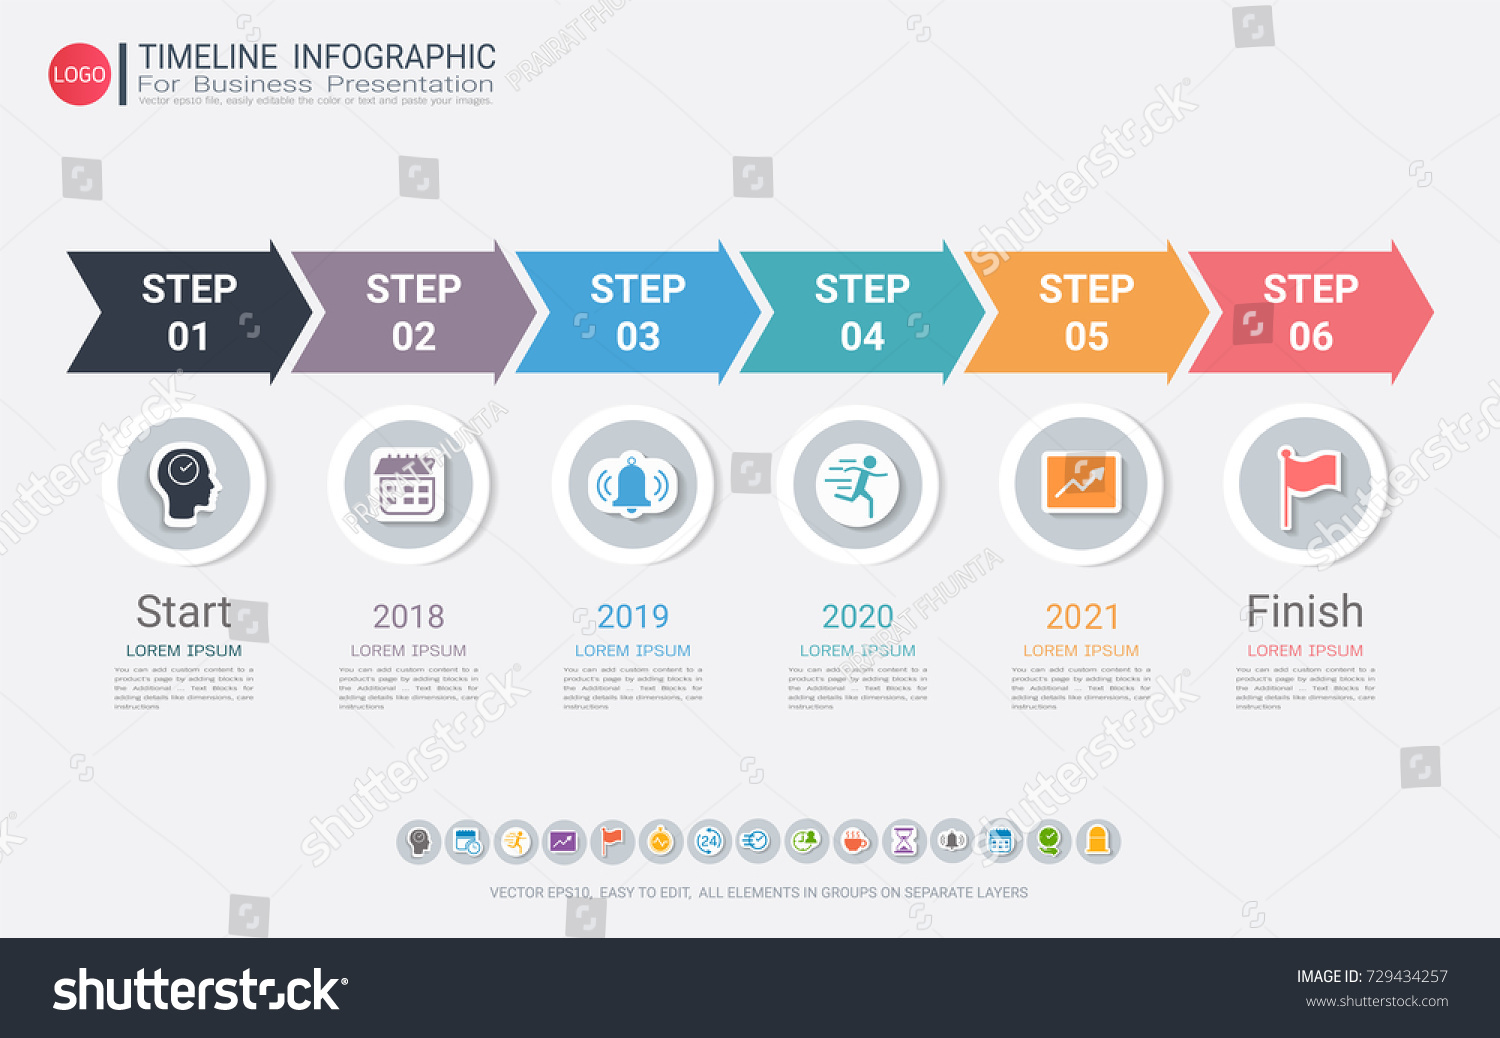 milestone timeline infographic design road map or strategic plan to define company values used